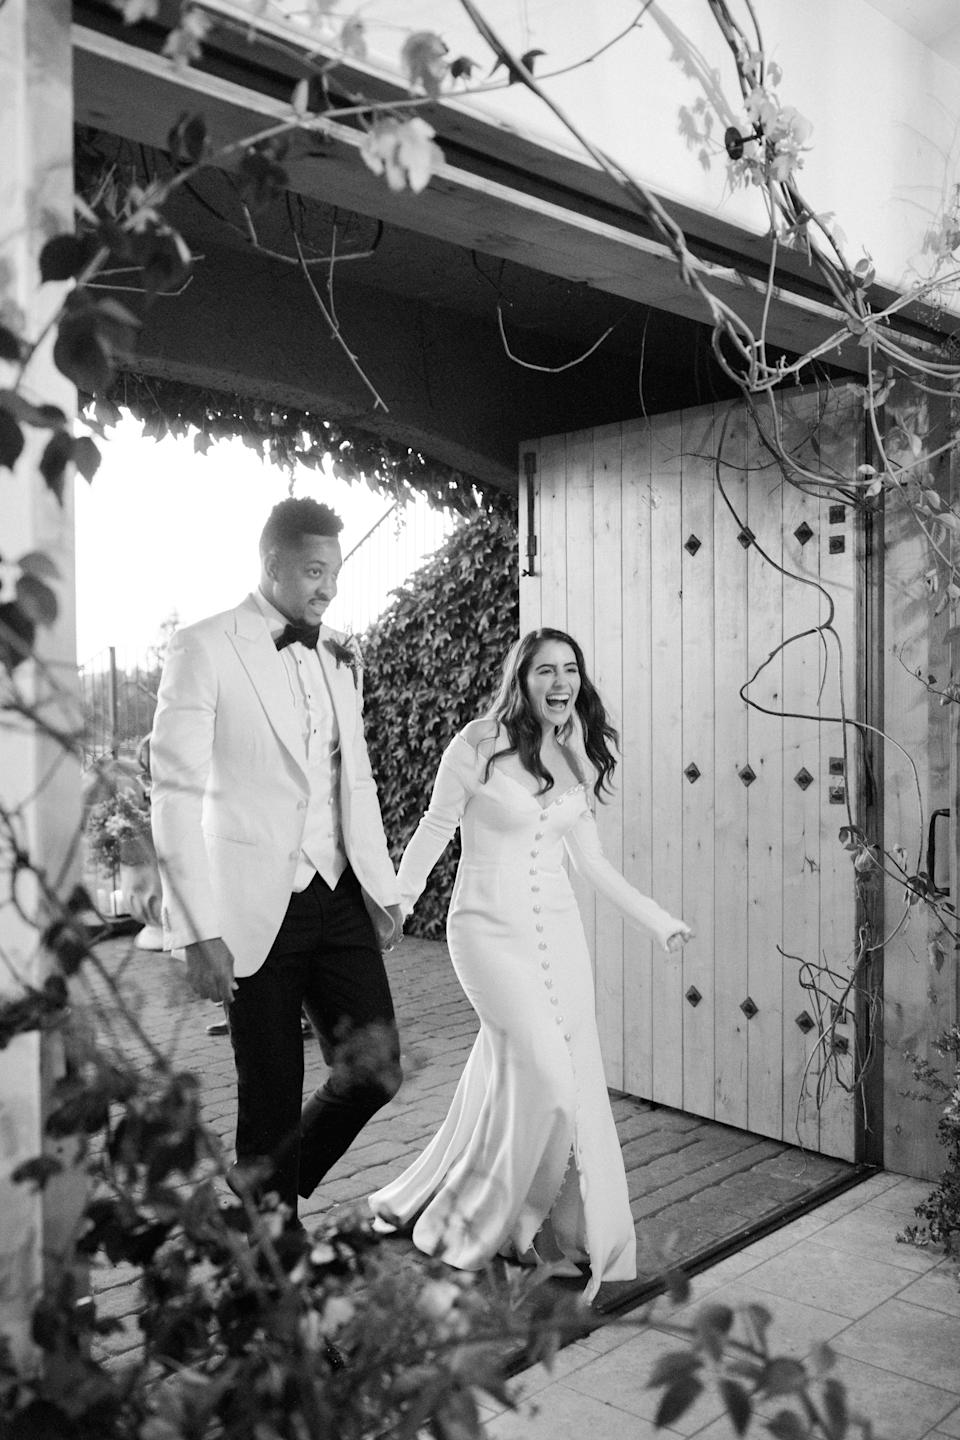 "Walking into our enchanted reception. My inspiration was an uninhabited and untamed garden, overgrown with flowers, branches, and vines. <a href=""https://www.instagram.com/hart_floral/?hl=en"" rel=""nofollow noopener"" target=""_blank"" data-ylk=""slk:Hart Floral"" class=""link rapid-noclick-resp"">Hart Floral</a> and <a href=""https://www.instagram.com/orenco.co/?hl=en"" rel=""nofollow noopener"" target=""_blank"" data-ylk=""slk:Yifat Oren"" class=""link rapid-noclick-resp"">Yifat Oren</a> completely transformed the space and brought my vision to life. As you can see in the photo, it literally made my jaw drop."